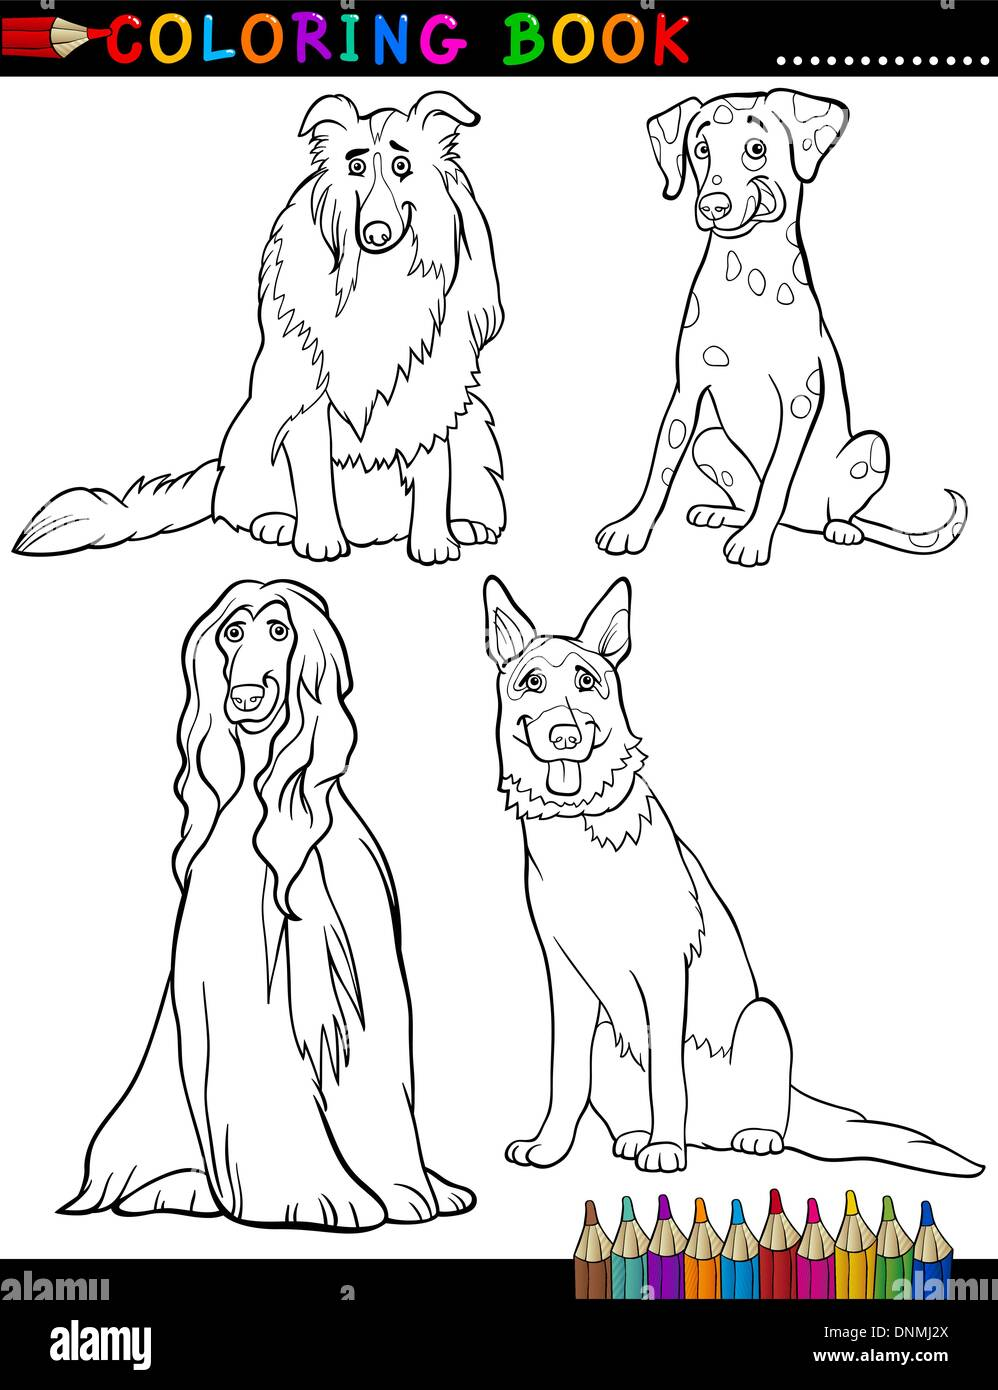 Coloring Book Black and White Cartoon Illustration of Cute Purebred Dogs - Stock Vector